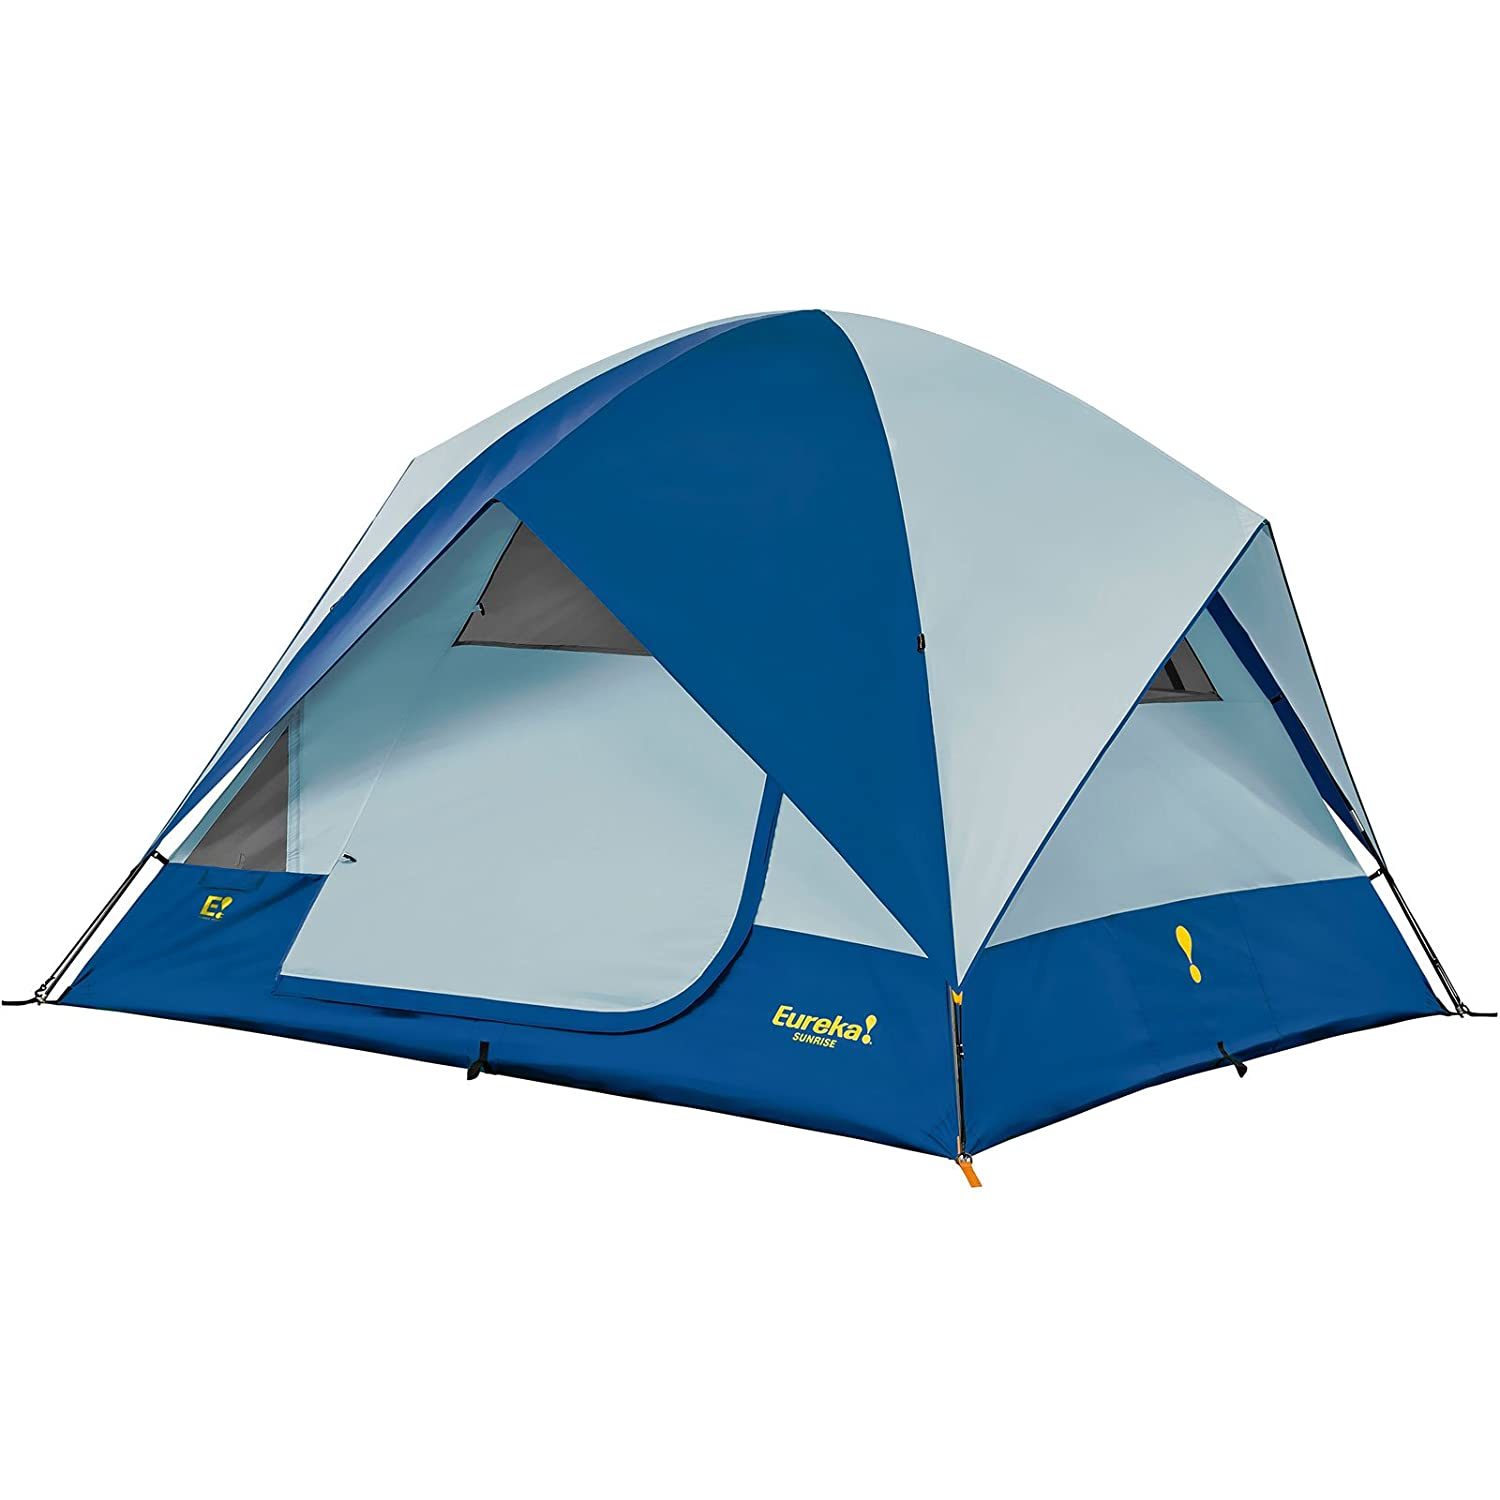 sc 1 st  Amazon.com & Amazon.com : Eureka Sunrise 6 - 6 Person Tent : Sports u0026 Outdoors